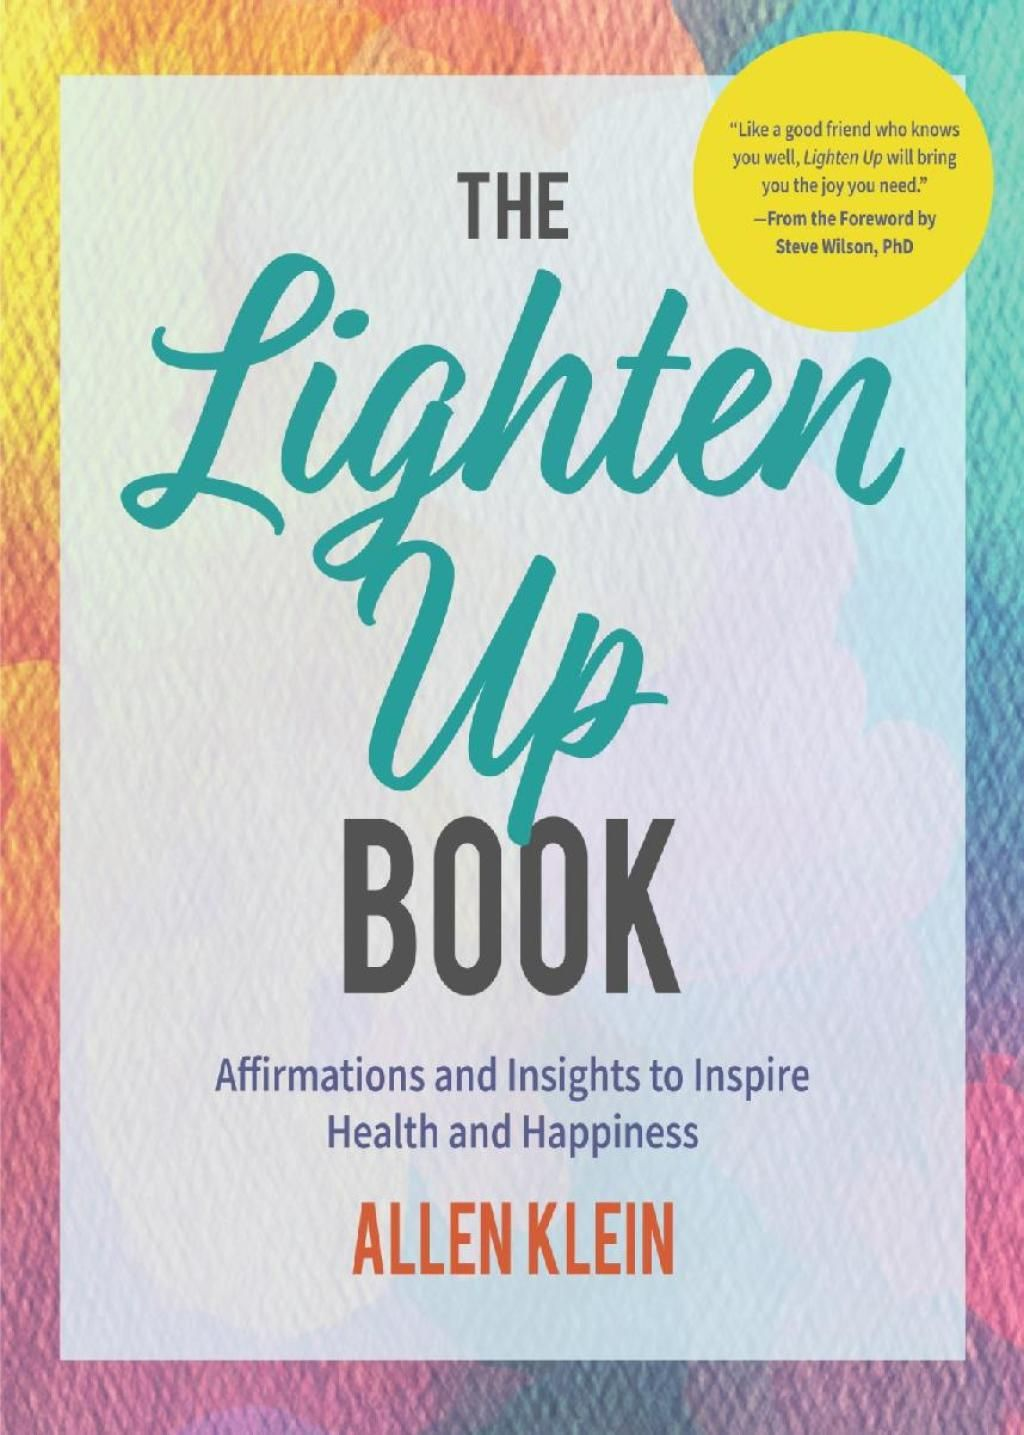 The Lighten Up Book Ebook Uplifting Books Free Kindle Books